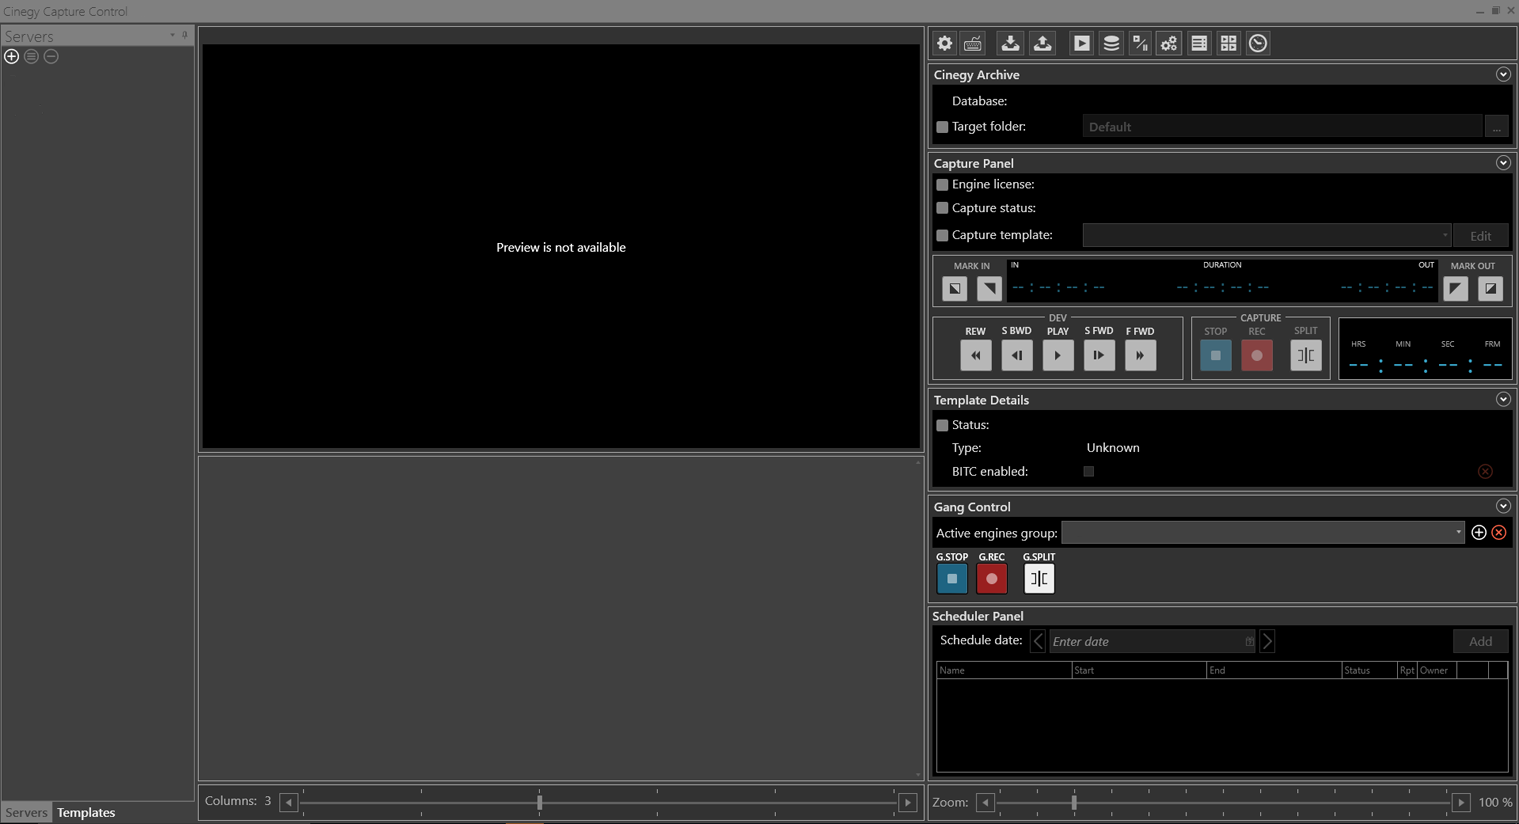 Cinegy_Capture_Client_interface